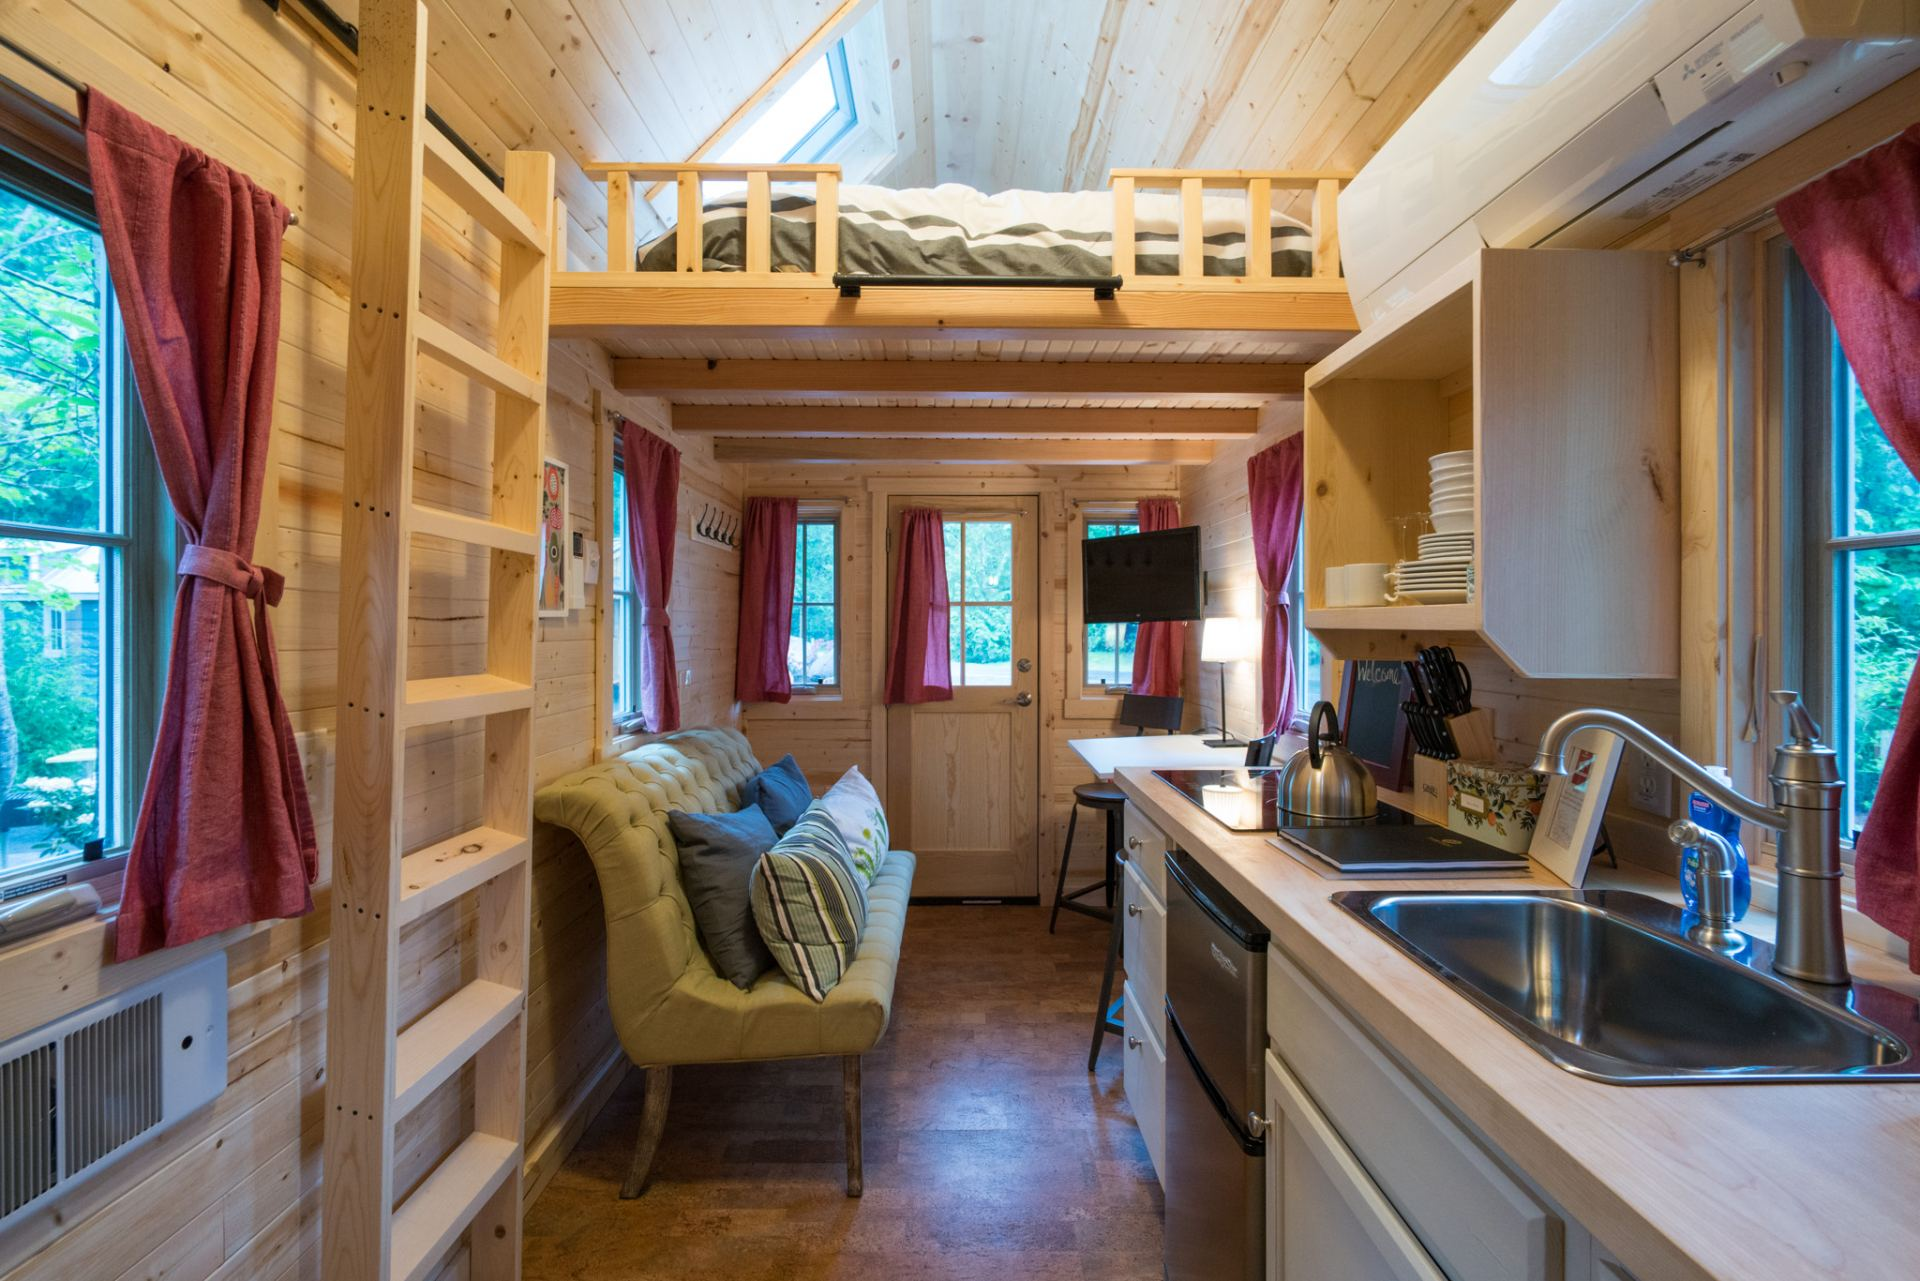 Tremendous Tiny House Giant Journey A Blog About Living Small And Traveling Largest Home Design Picture Inspirations Pitcheantrous